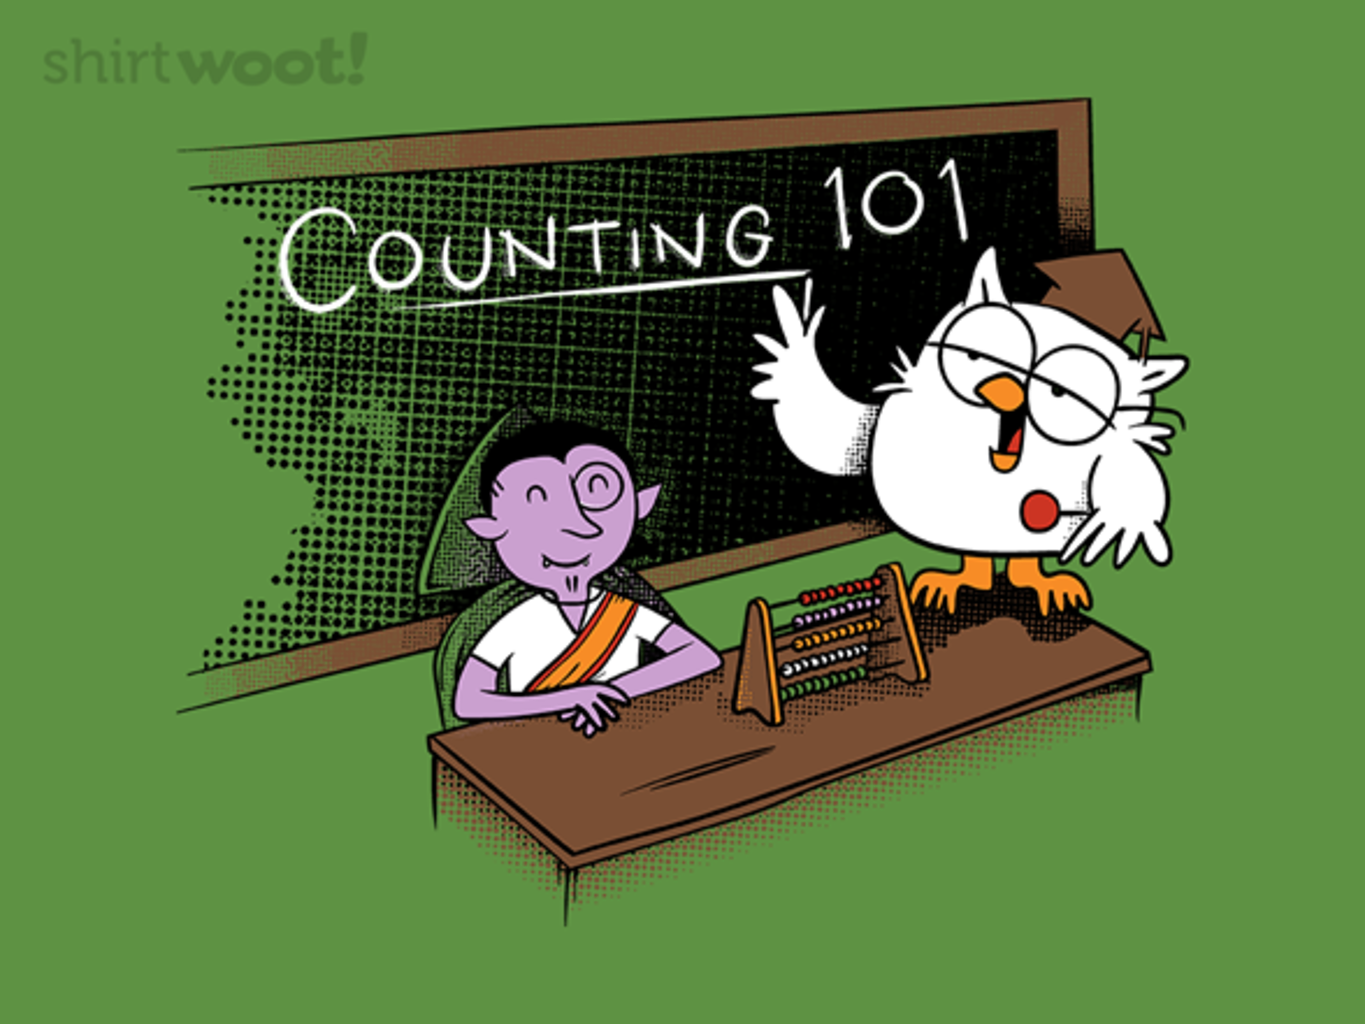 Woot!: Counting 101 - $15.00 + Free shipping